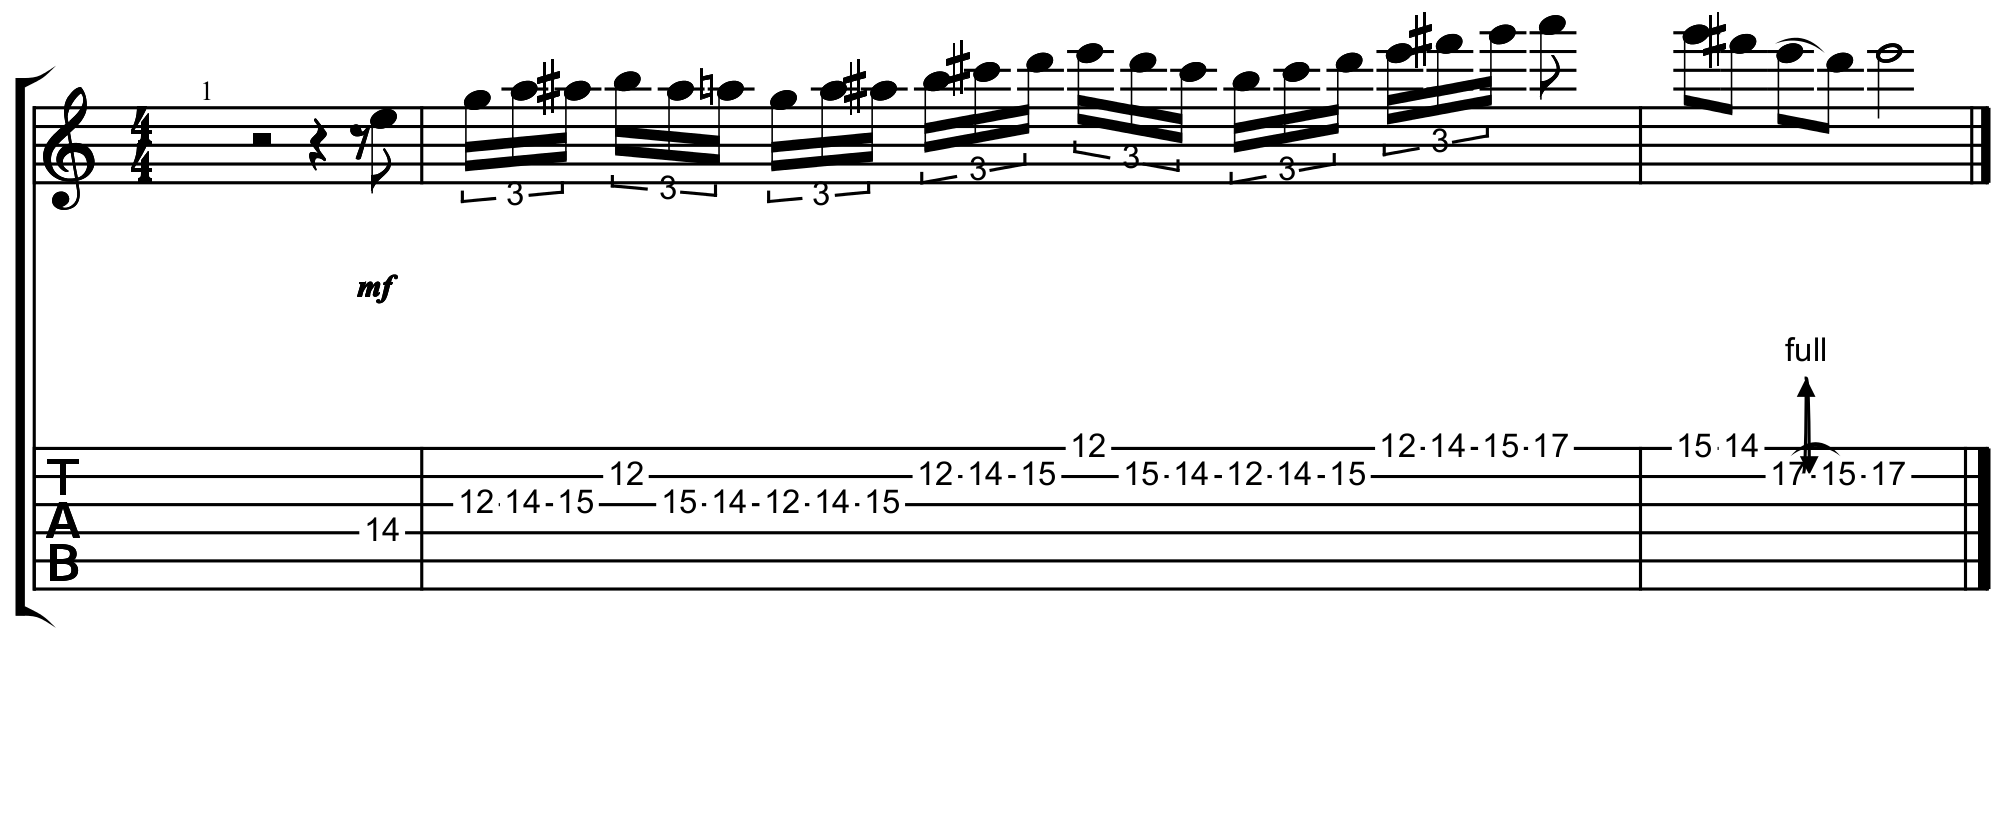 a pentatonic box shape lick that works in the key of E minor for metal solos